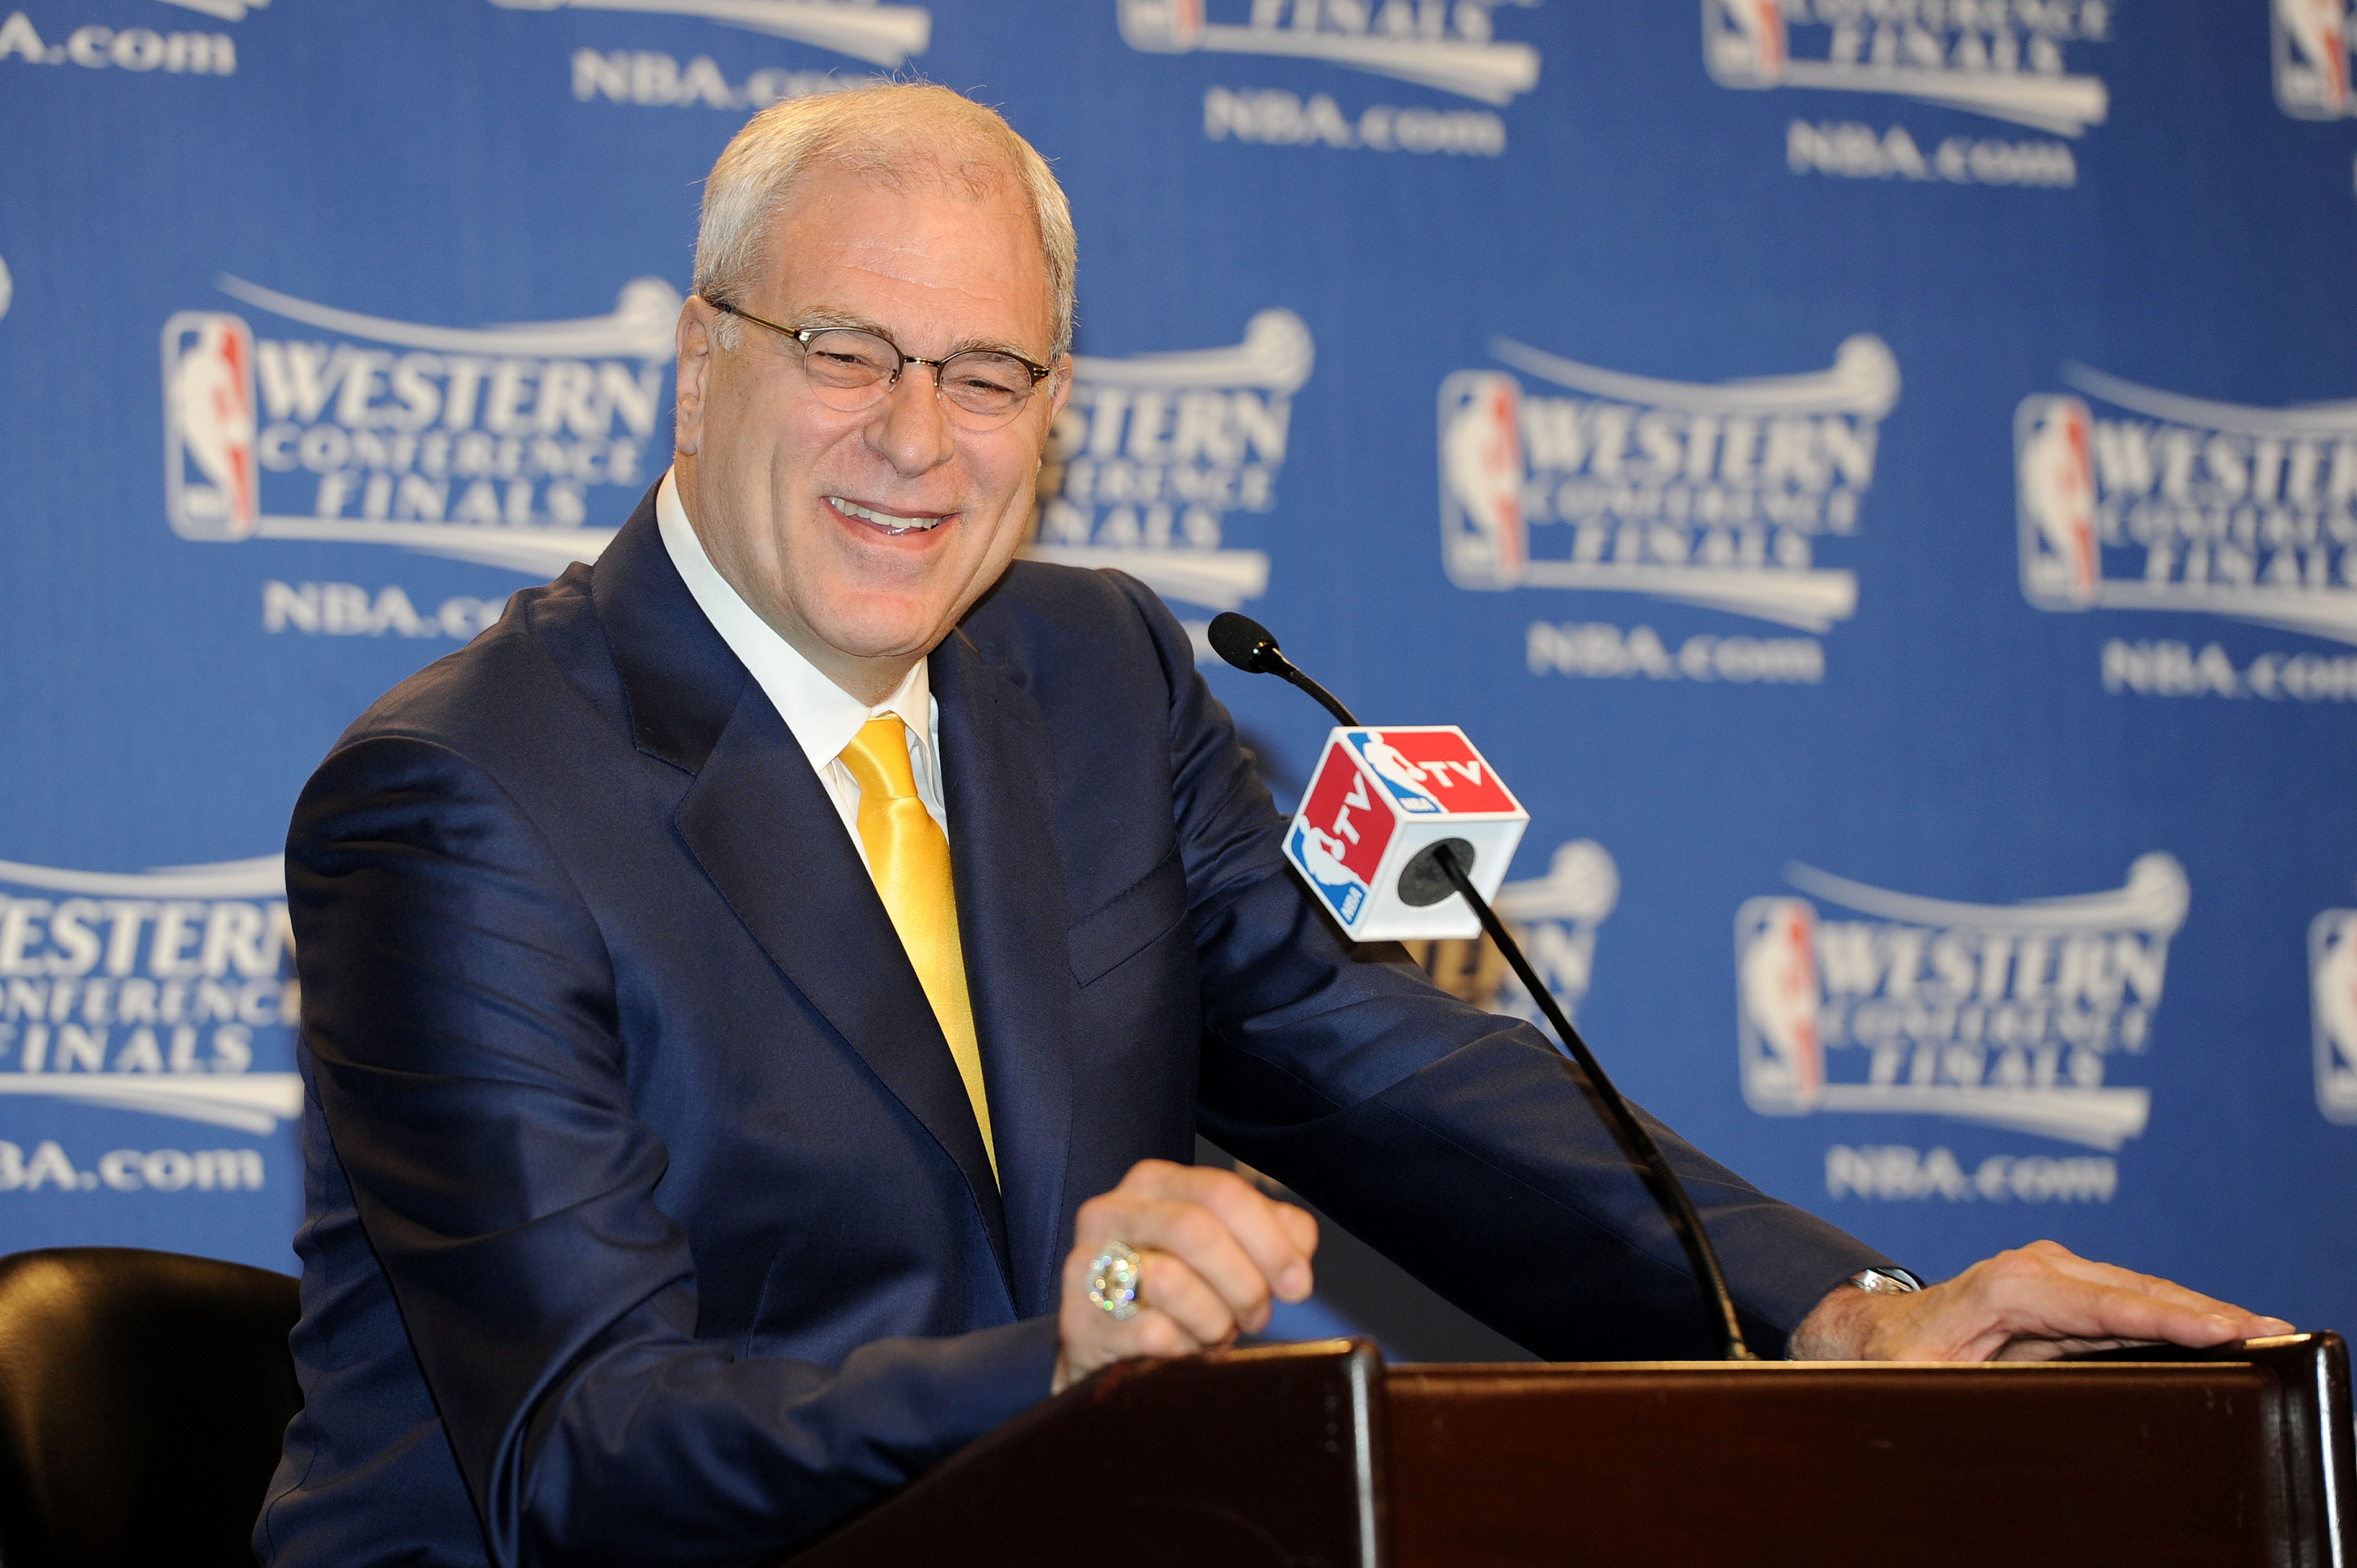 LOS ANGELES, CA - MAY 17:  Phil Jackson, head coach of the Los Angeles Lakers, speaks at a press conference prior to Game One of the Western Conference Finals against the Phoenix Suns in the 2010 NBA Playoffs at Staples Center on May 17, 2010 in Los Angel